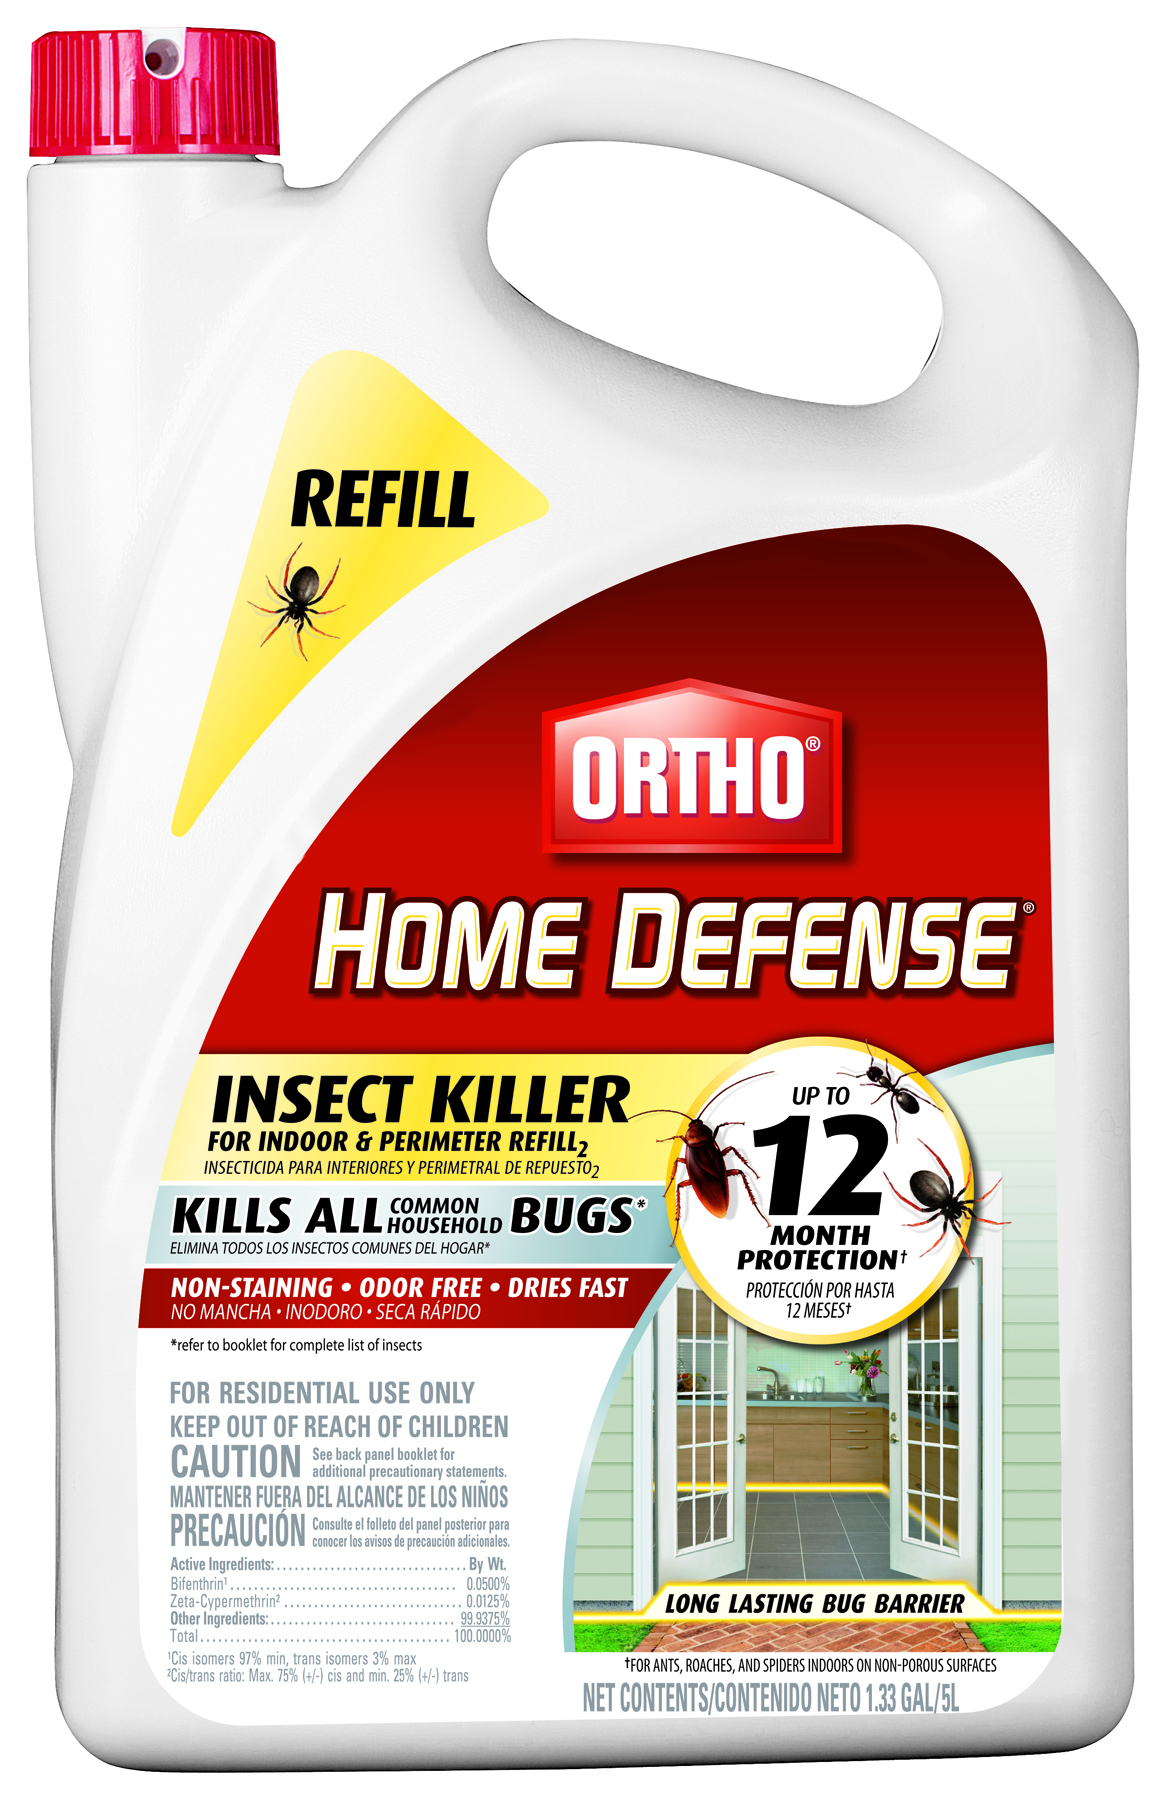 Ortho Home Defense Insect Killer For Indoor And Perimeter